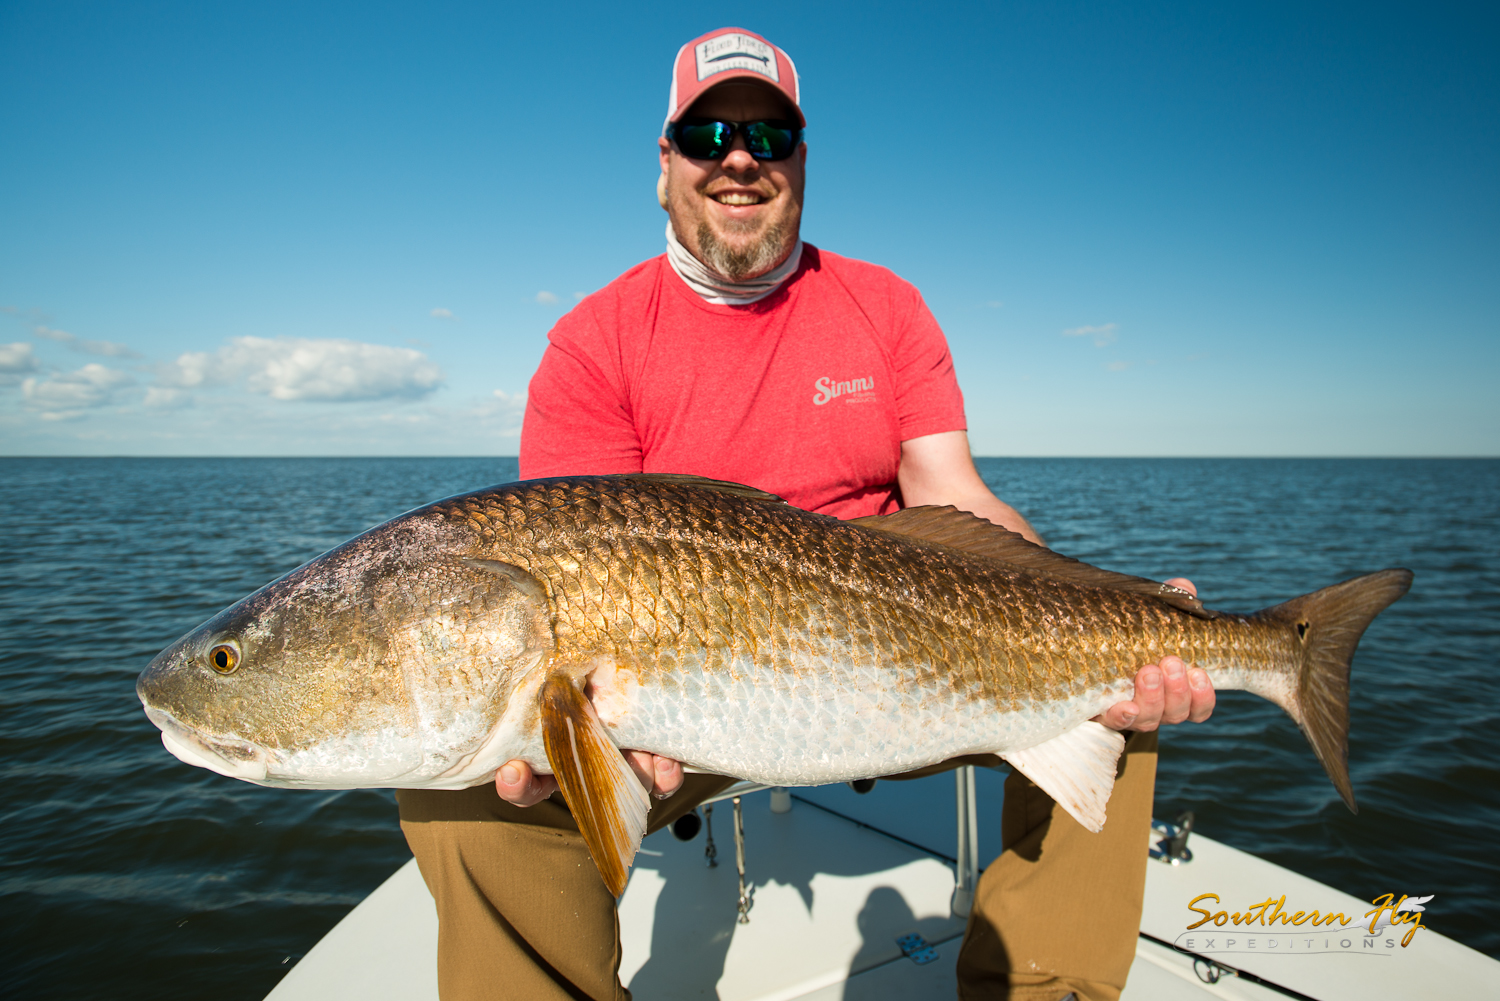 Fly Fishing for Redfish in Southern Louisiana with Southern Fly Expeditions of New Orleans